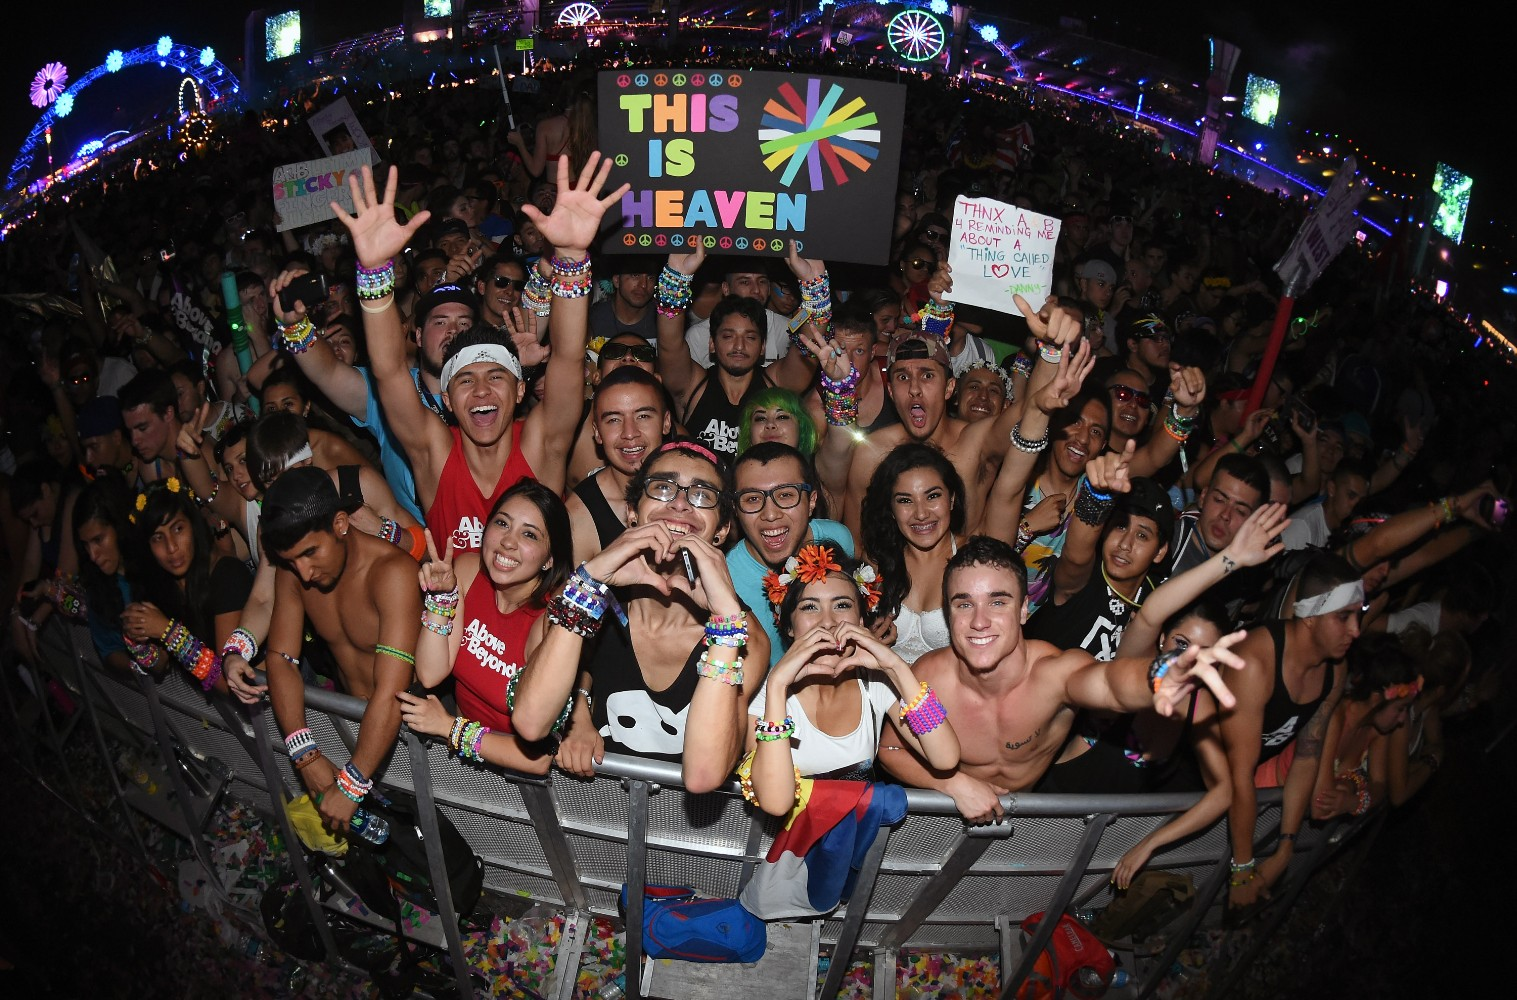 The 50 Best EDM Songs You've Heard at Every Summer Festival